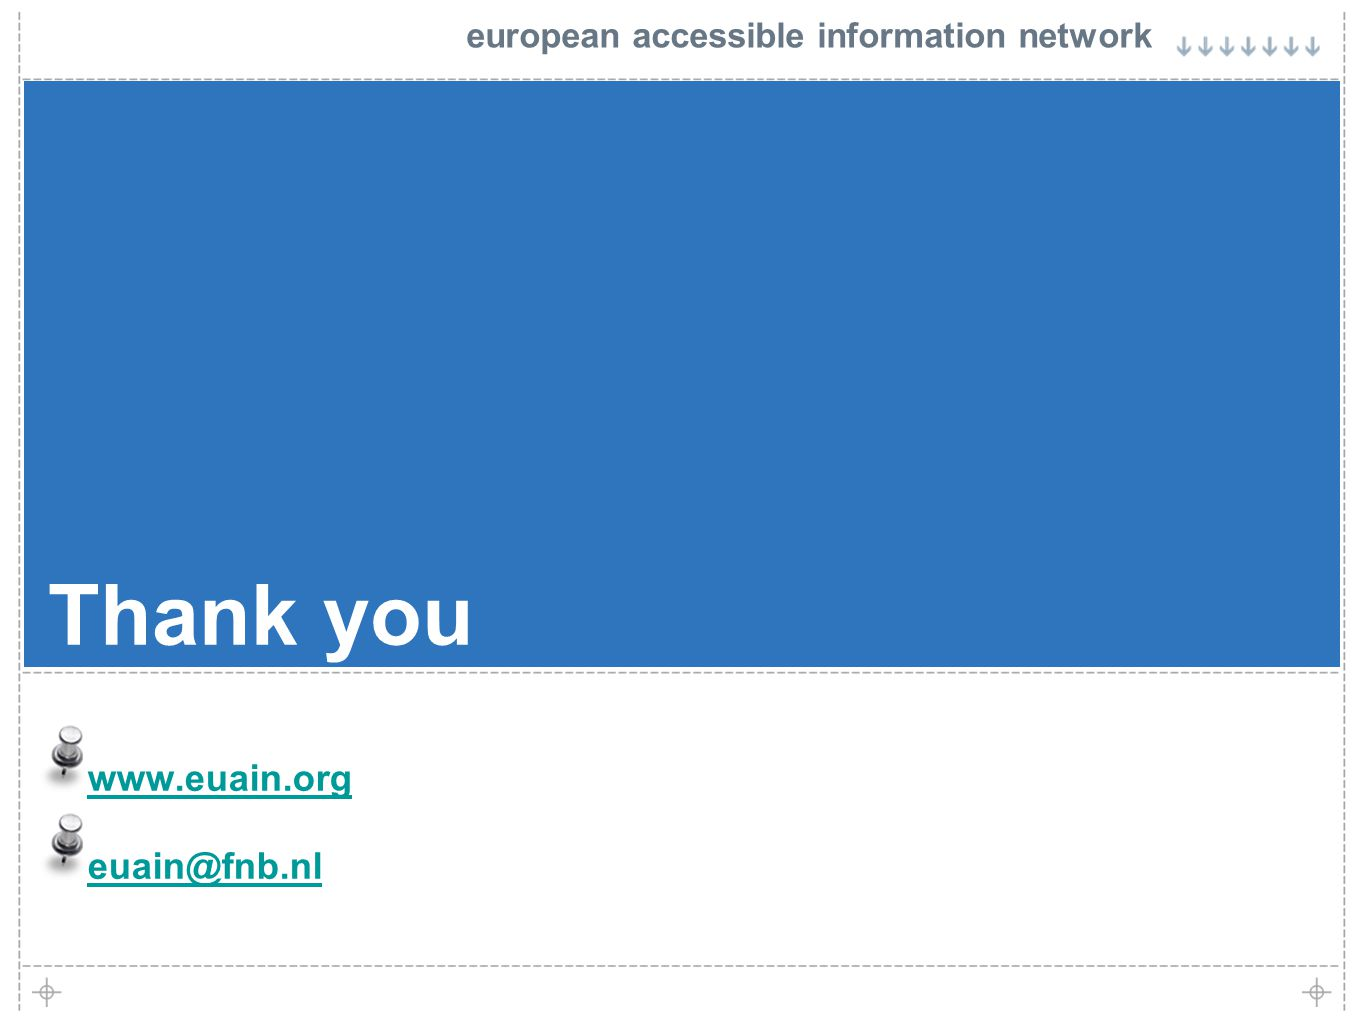 european accessible information network Thank you www.euain.org euain@fnb.nl